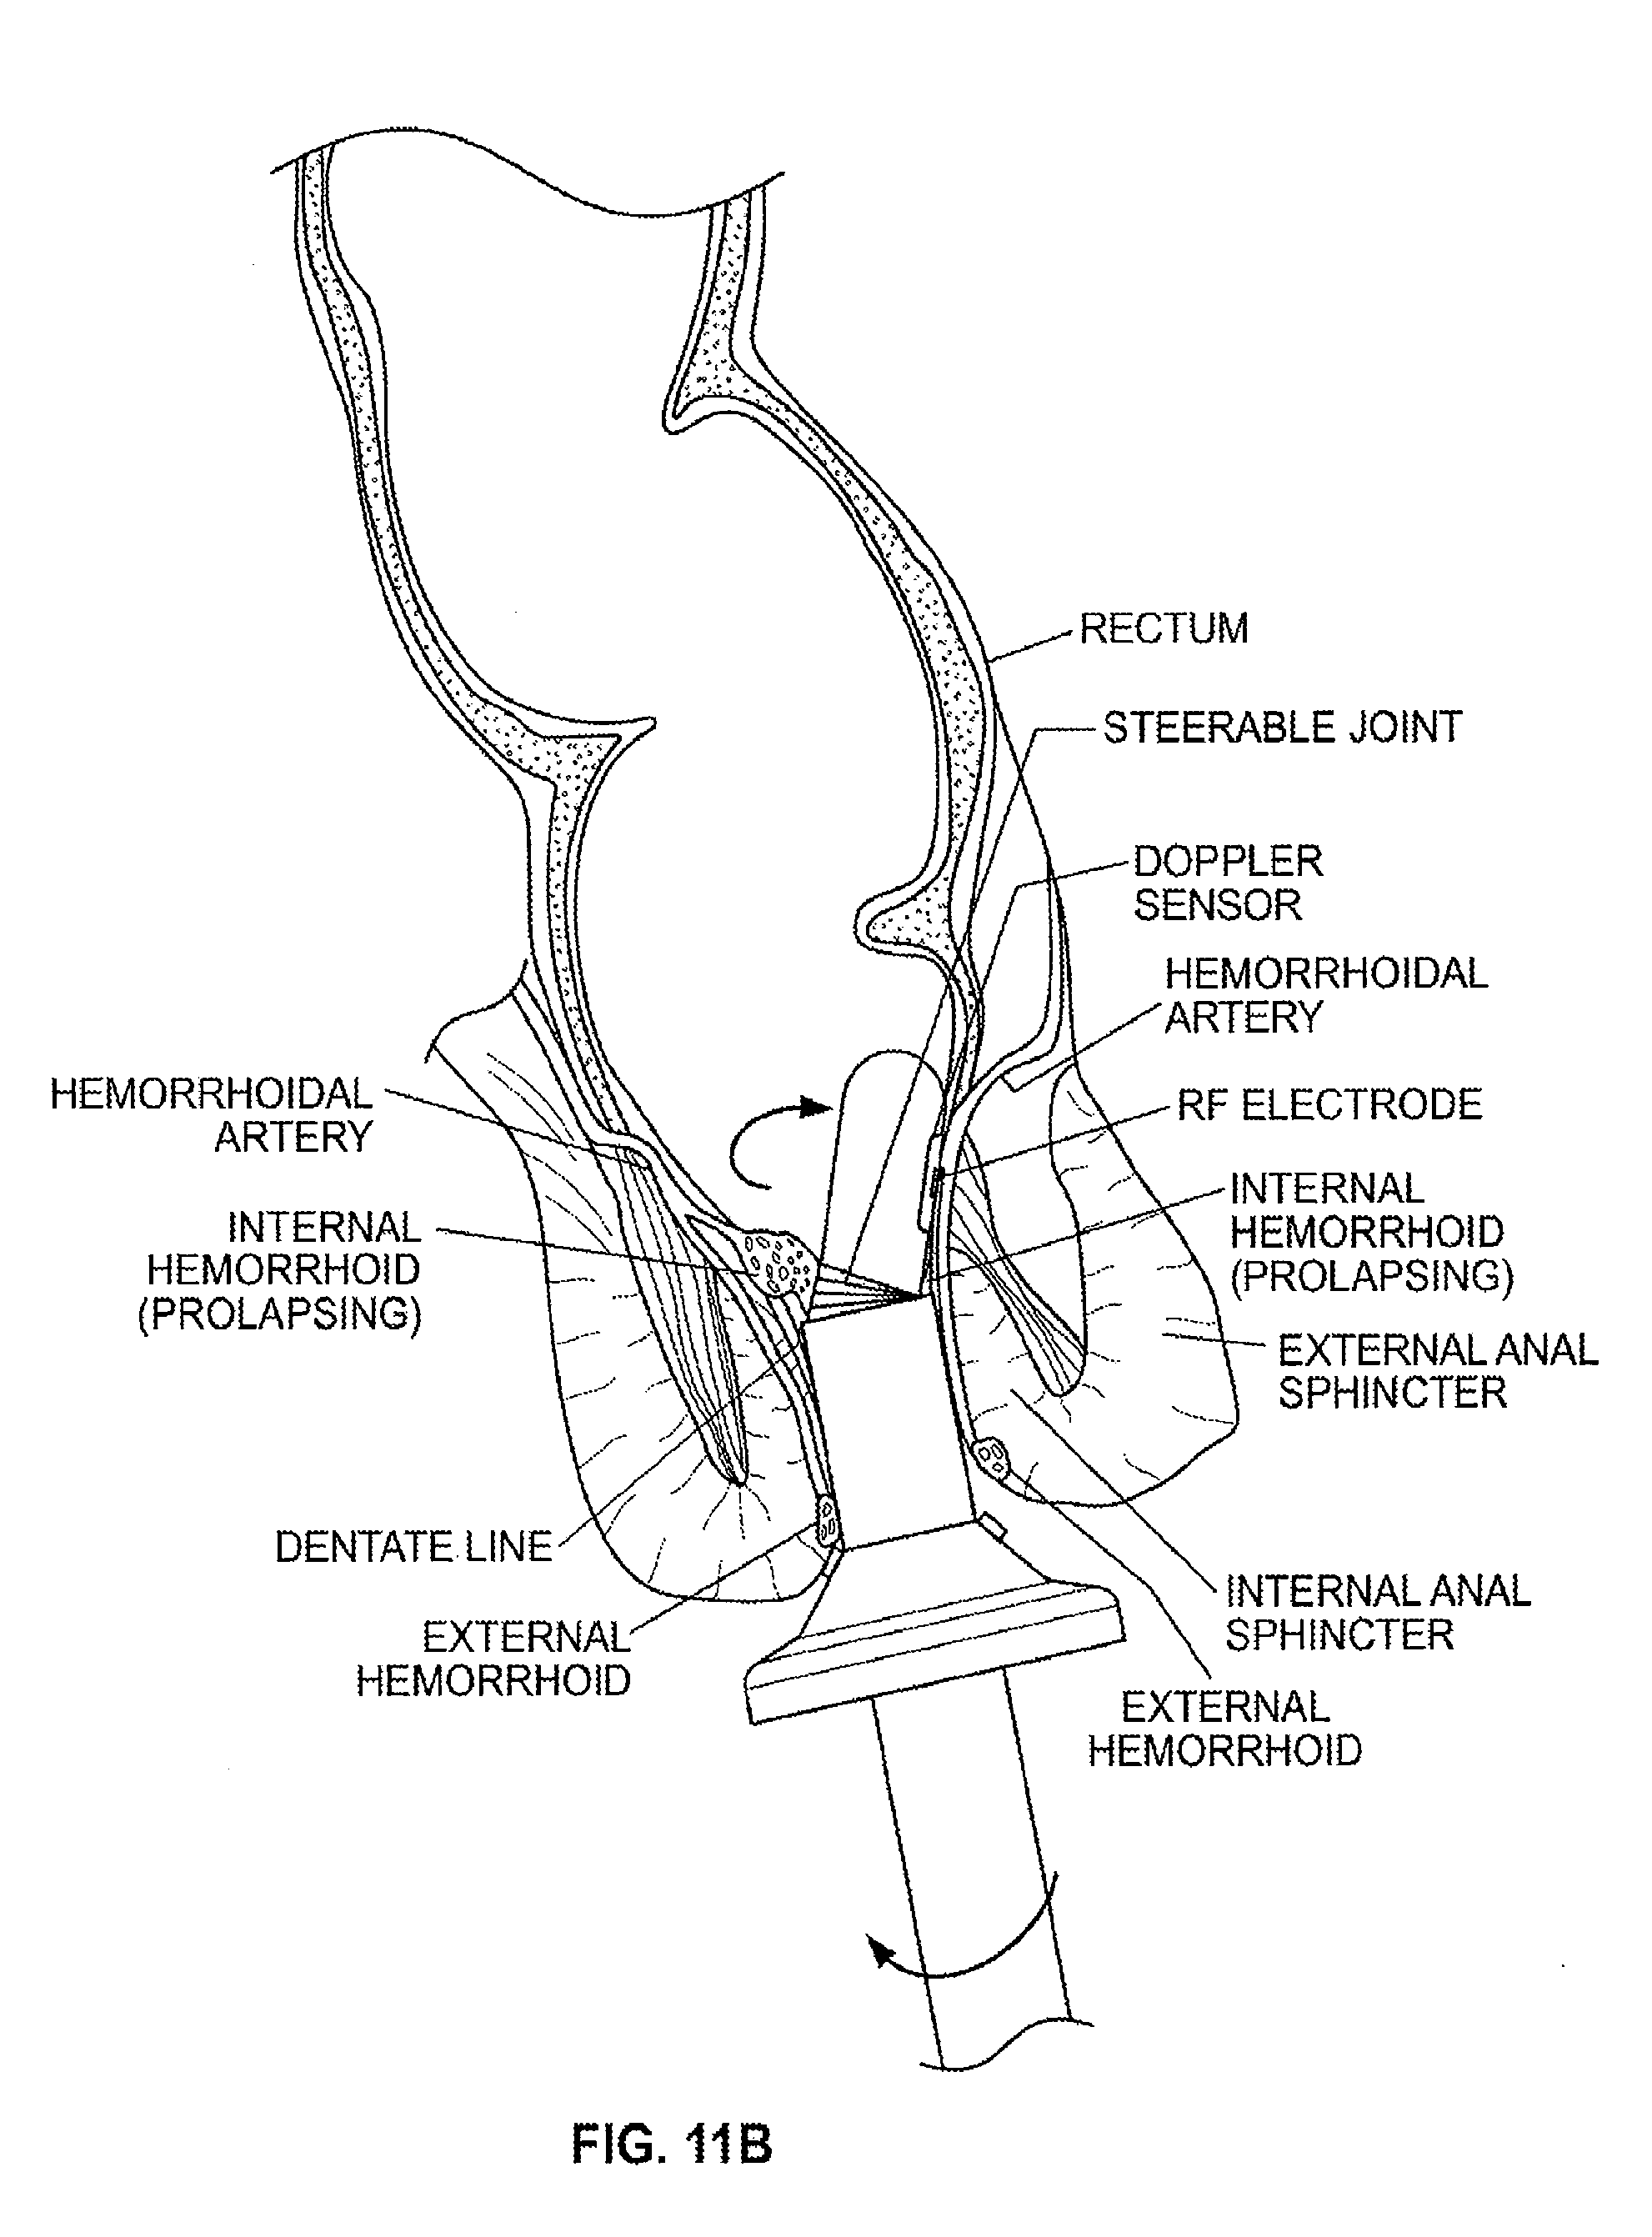 Her prettily Precise calibrated anal sphincter dilatation